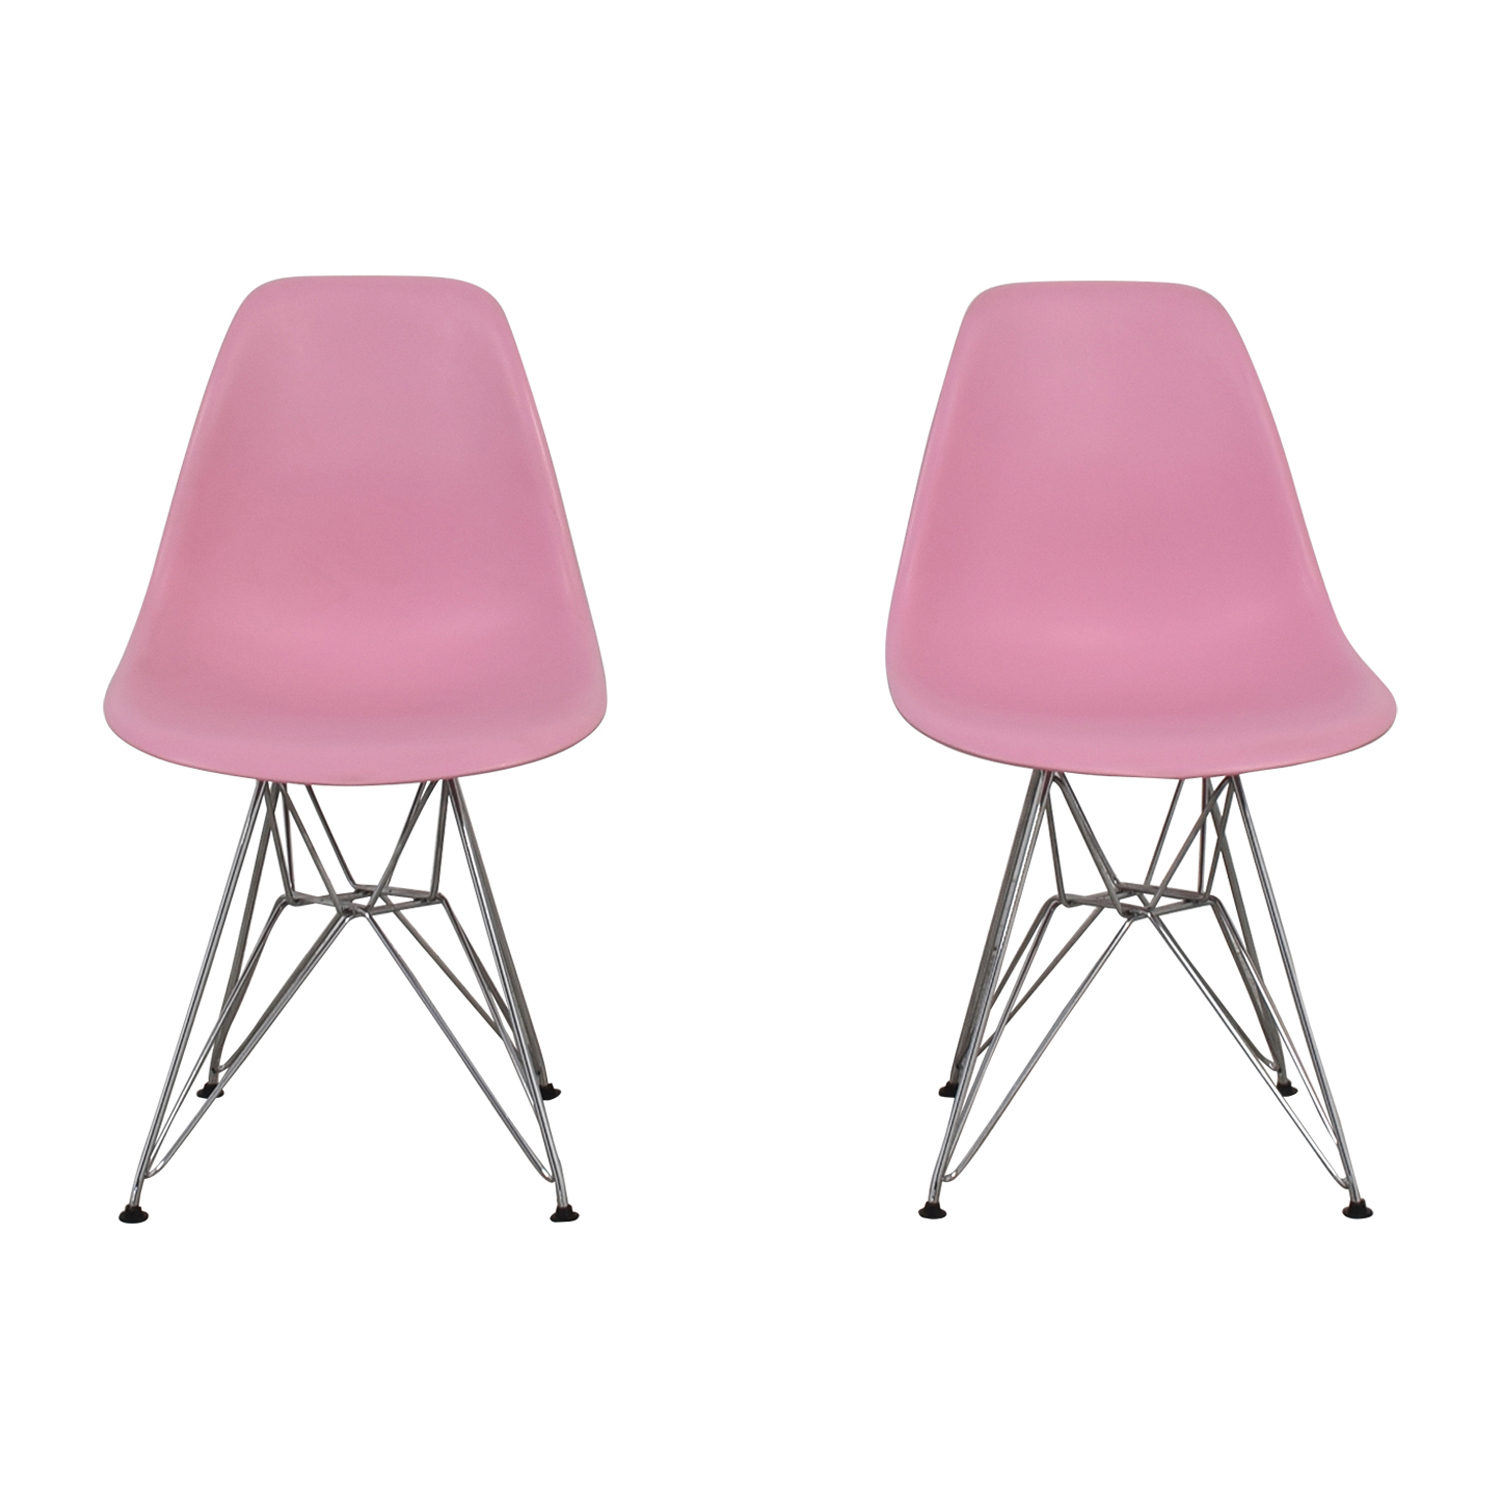 Mid-Century Light Pink Chairs / Accent Chairs